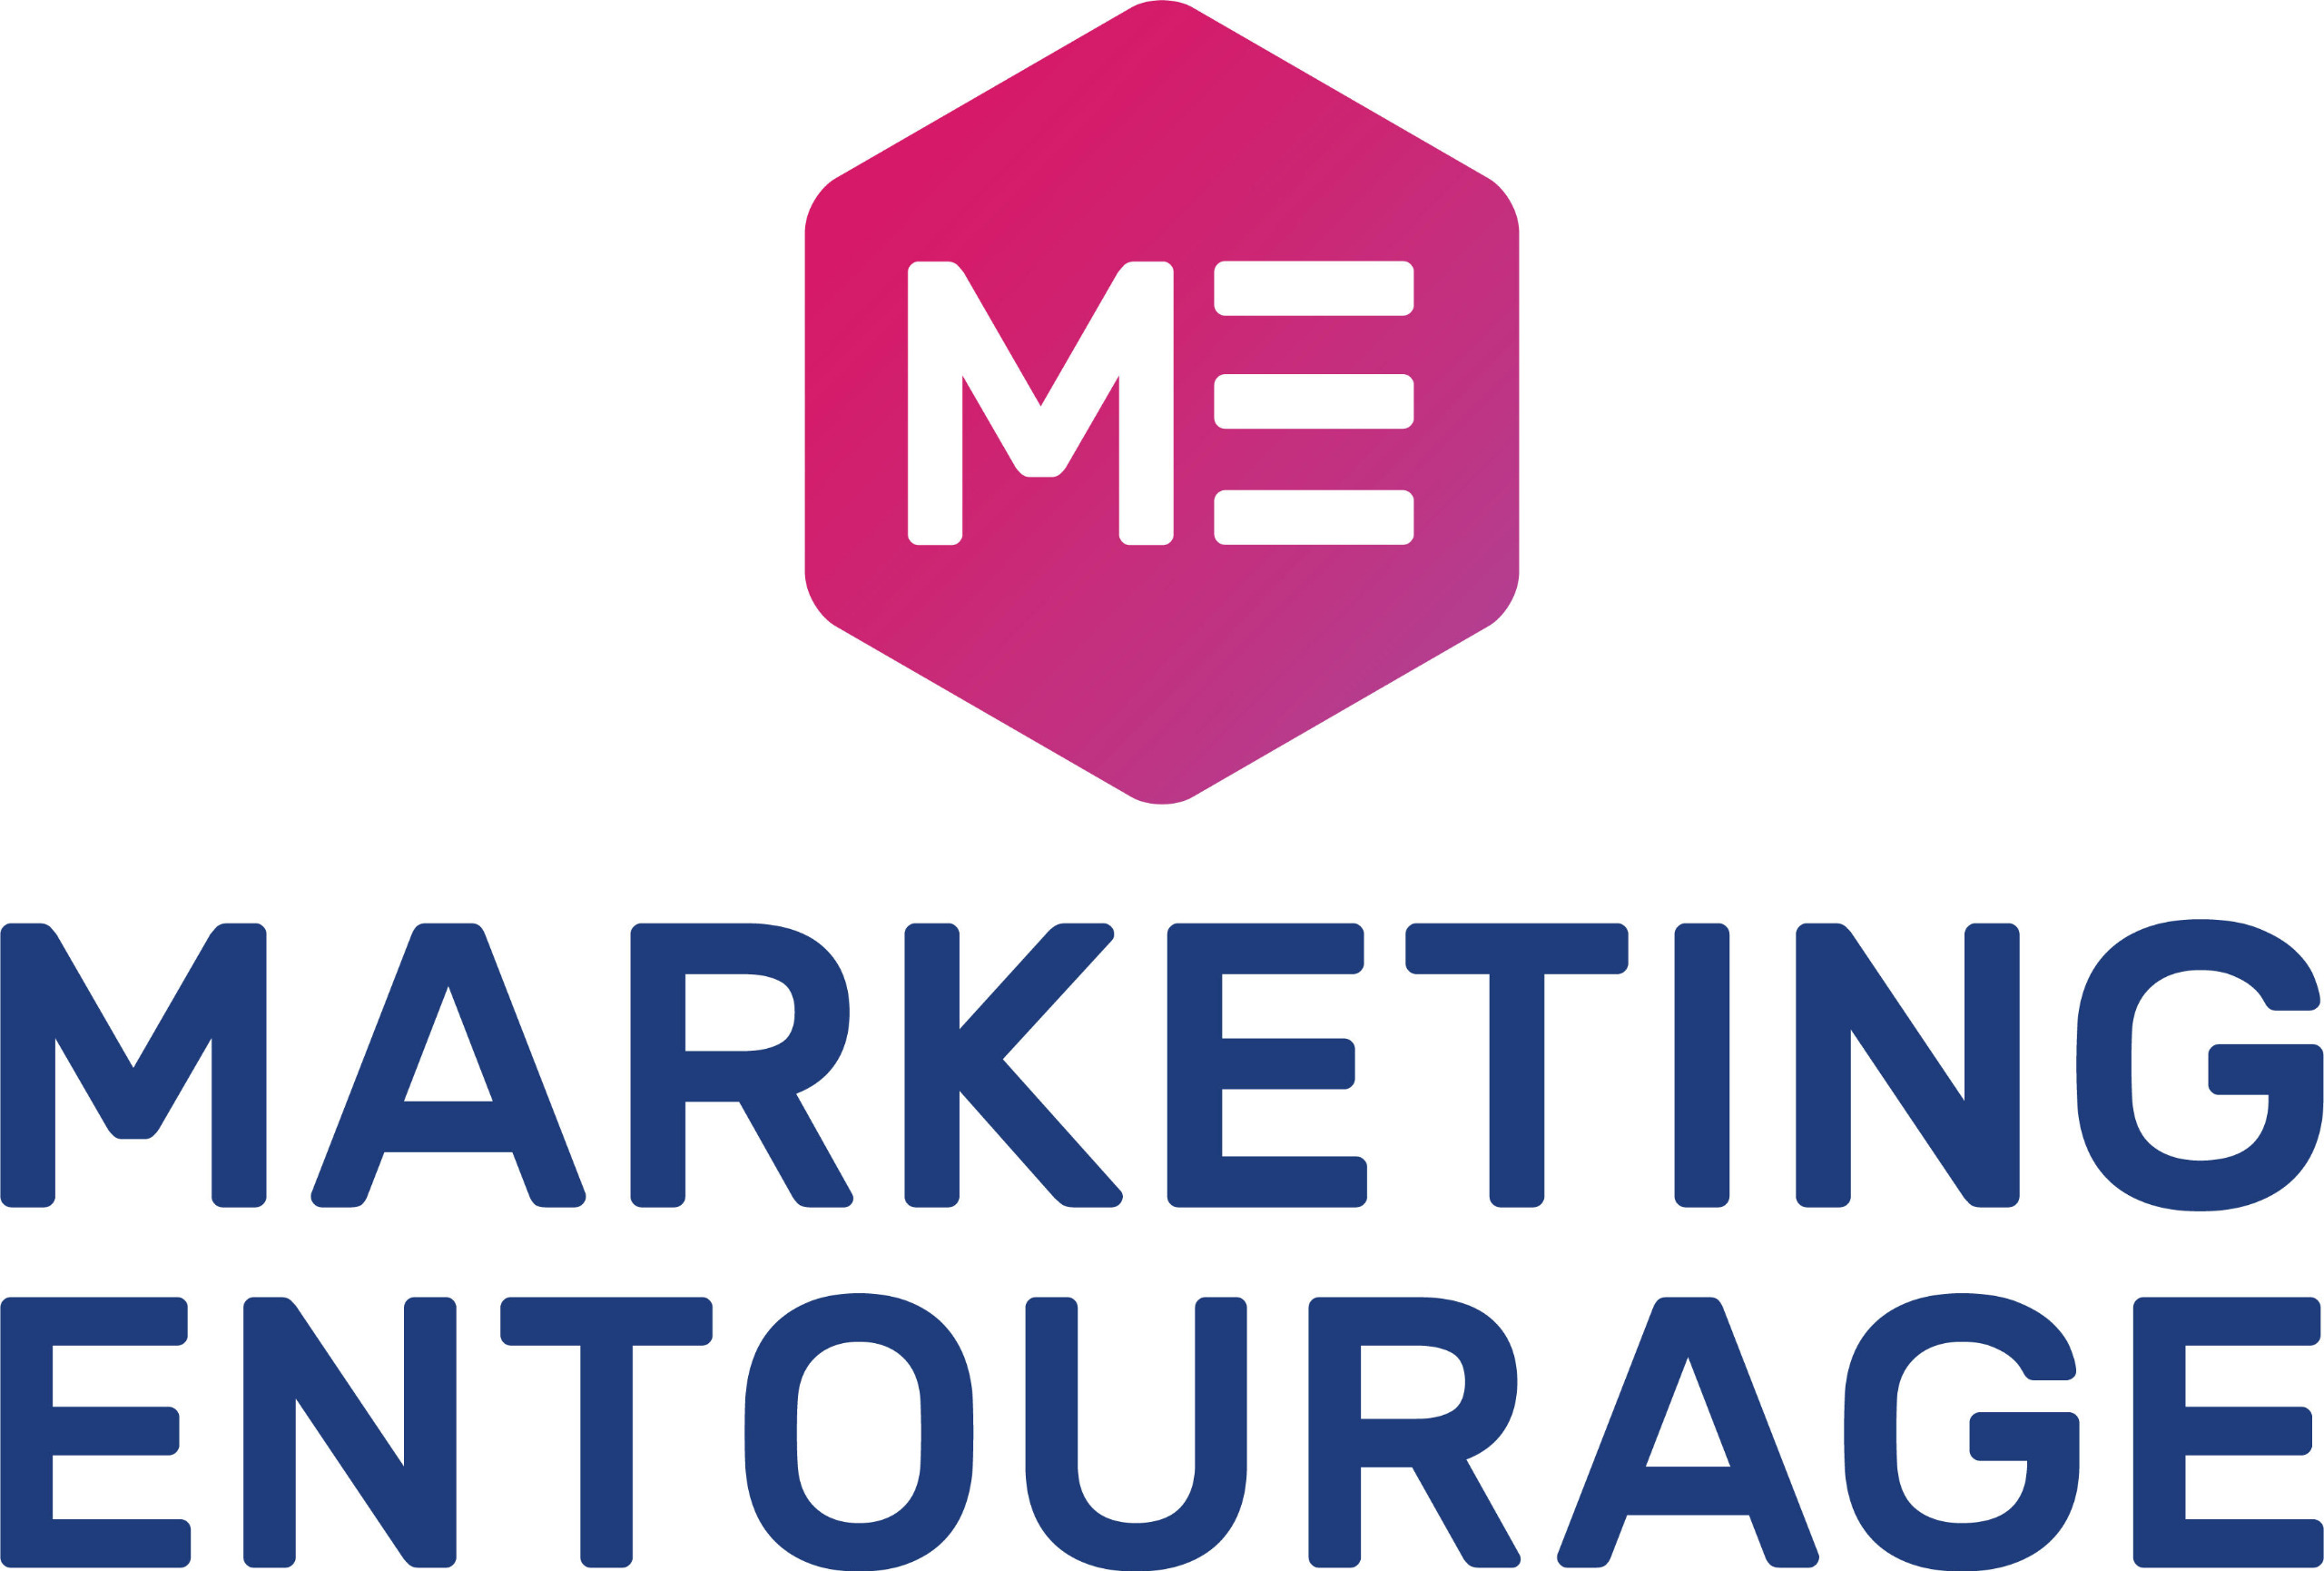 Marketing Entourage